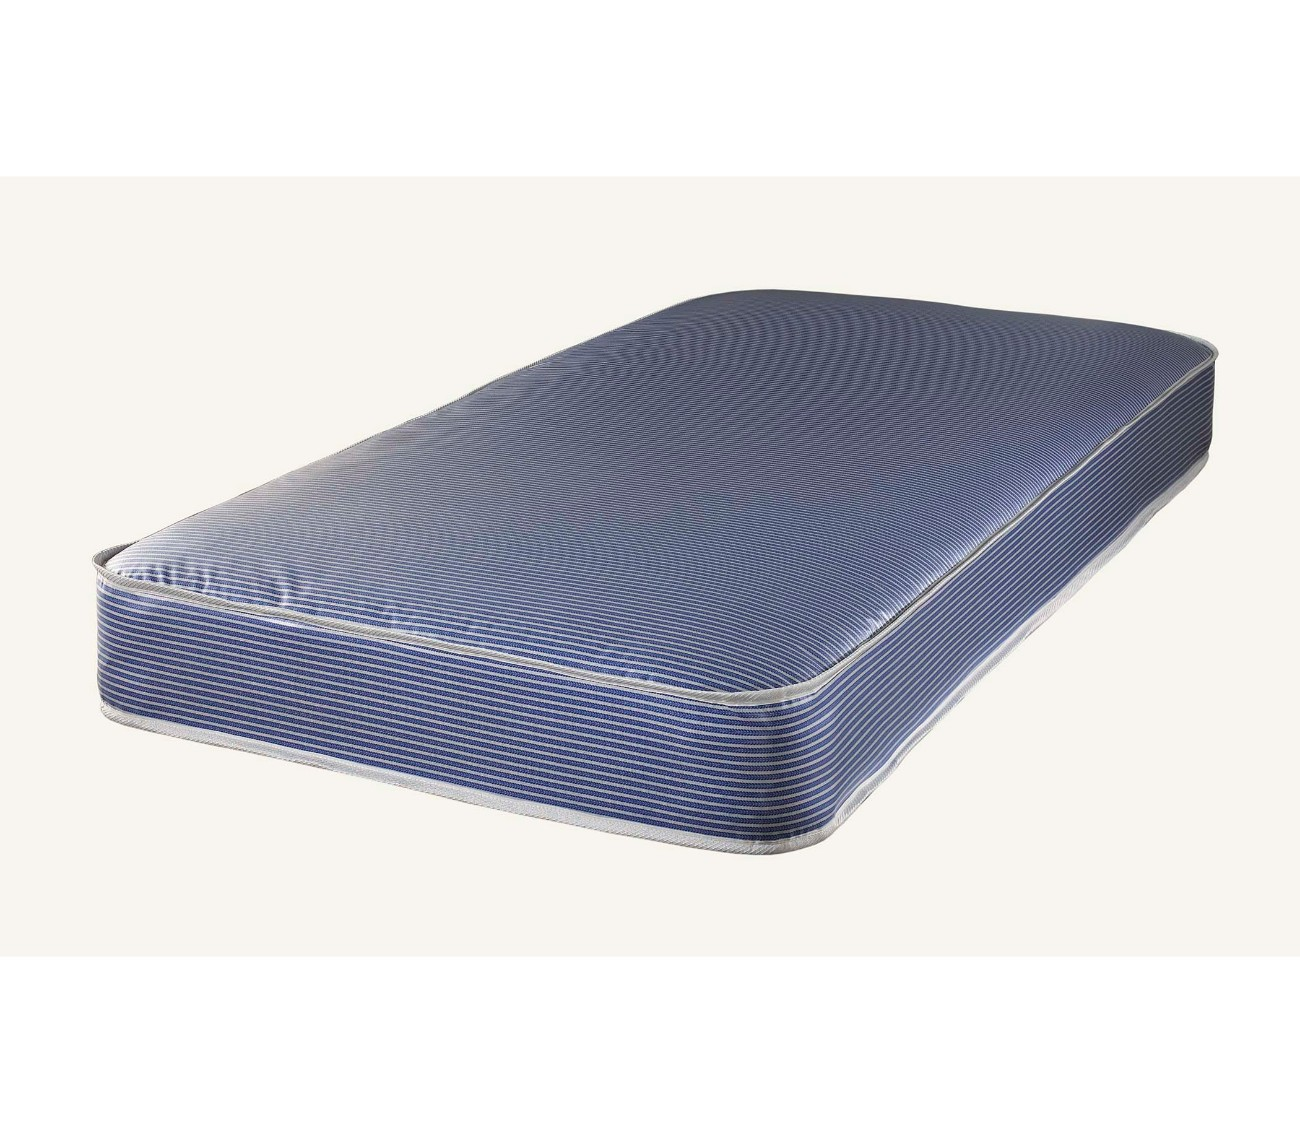 thumb_dvr_d_waterproof_mattress